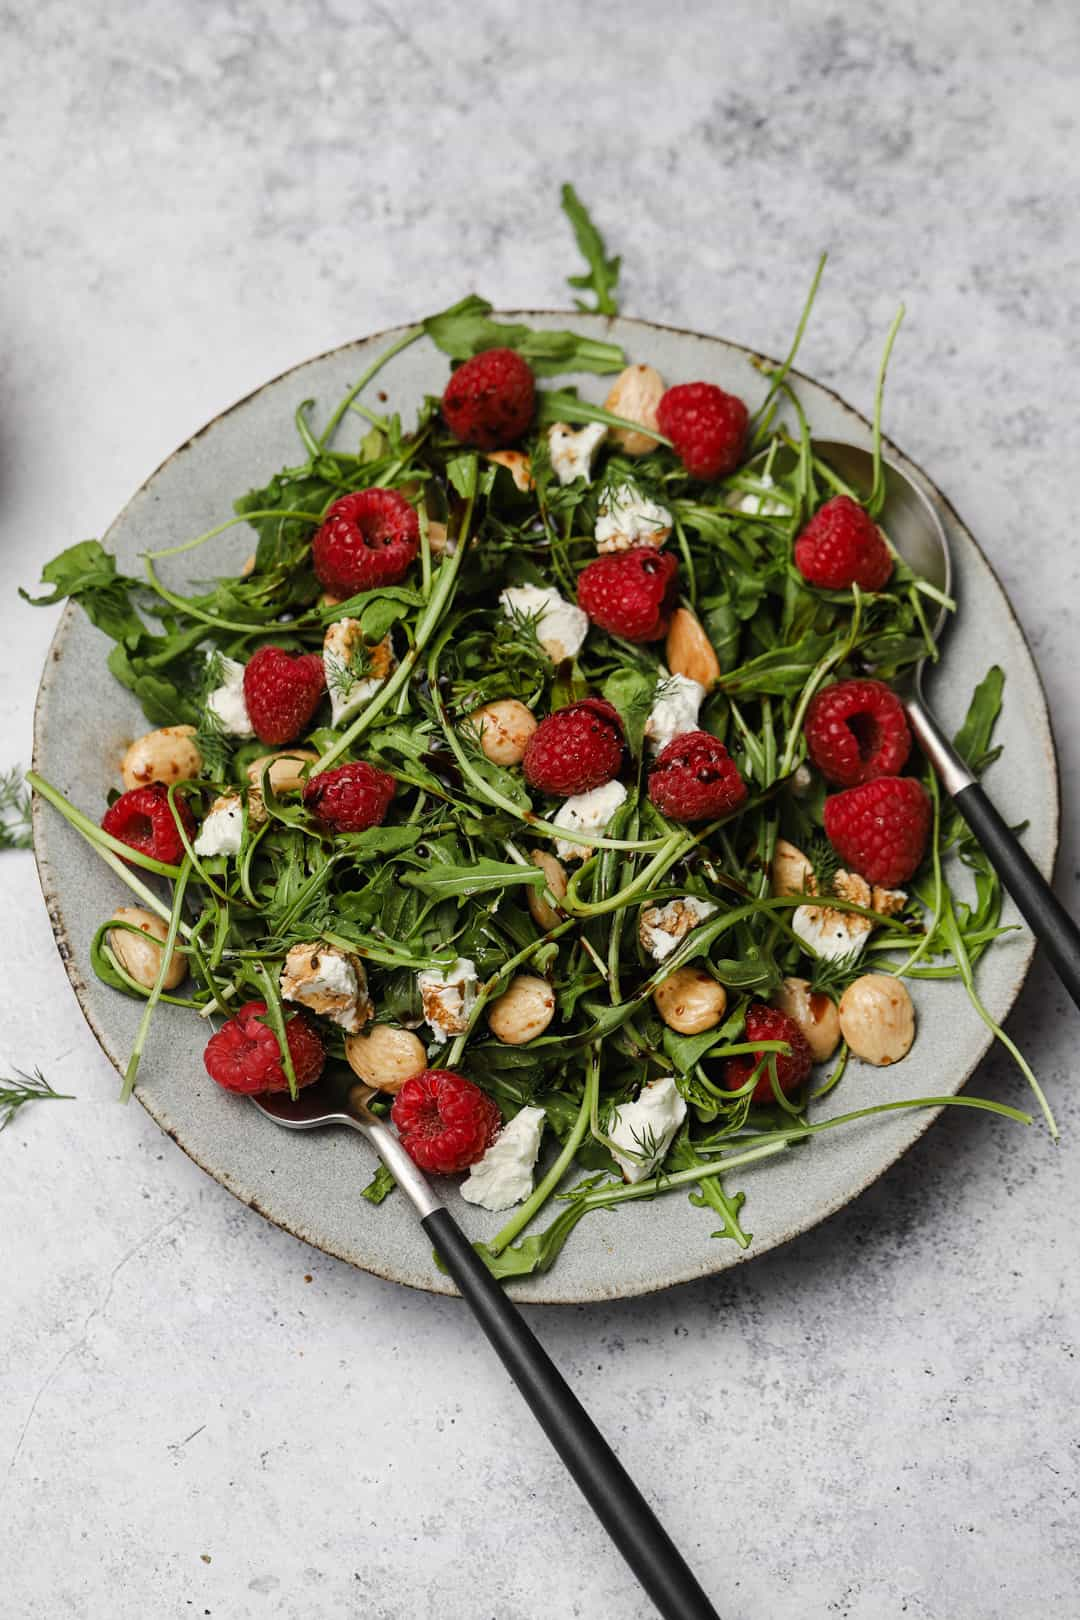 Arugula salad with marcona almonds and raspberries